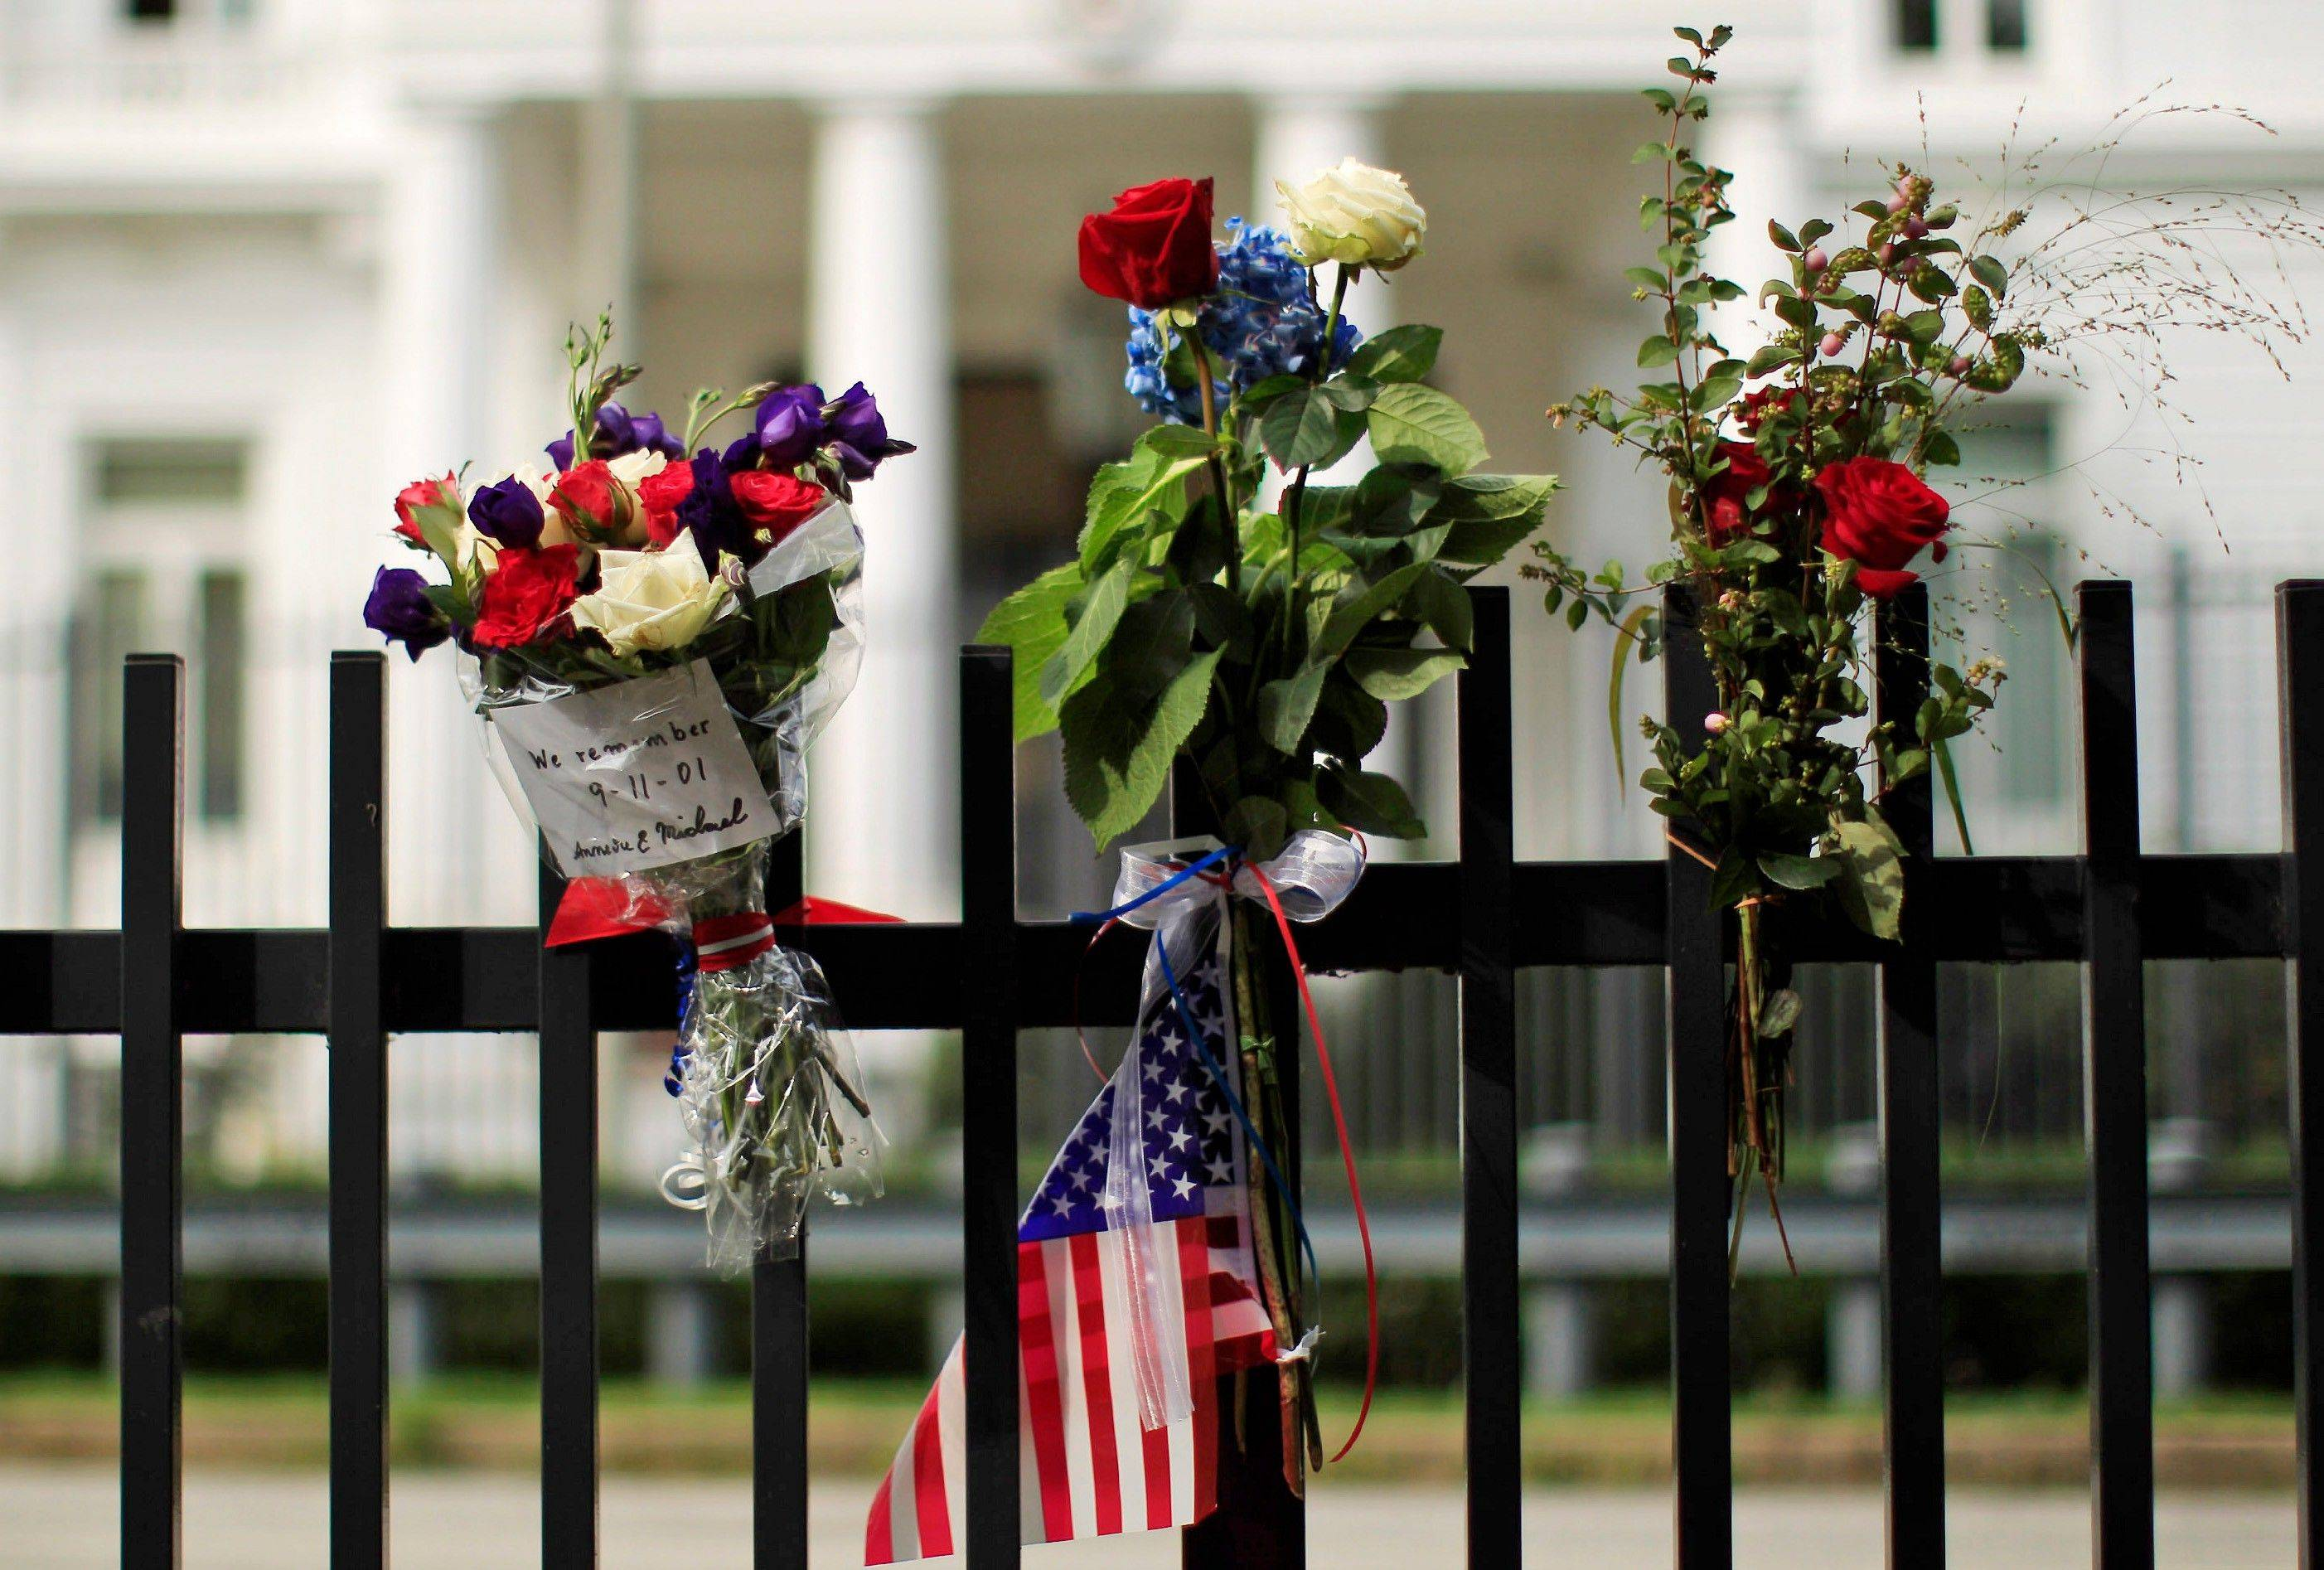 Flowers and a U.S flag are seen on the fence surrounding the U.S. Consulate as a commemoration to victims of the Sept. 11, 2001 attacks in Hamburg, northern Germany, Sunday Sept. 11, 2011.